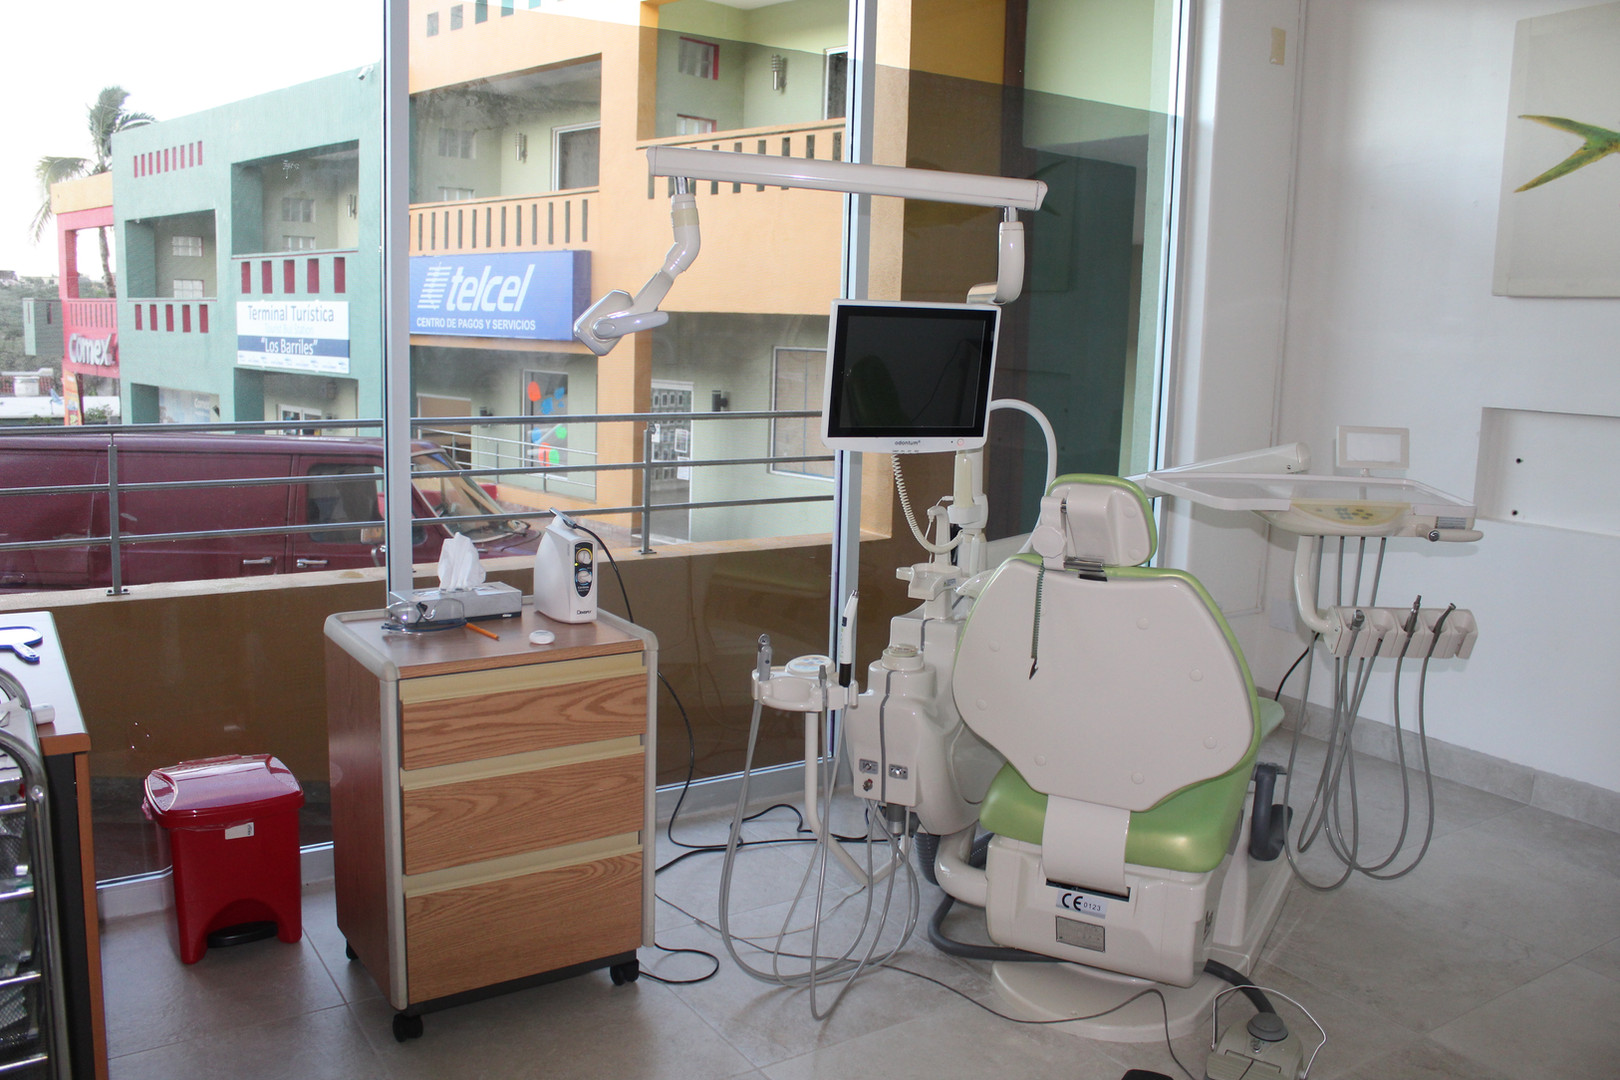 Dr. Samir Ganelon's dental room